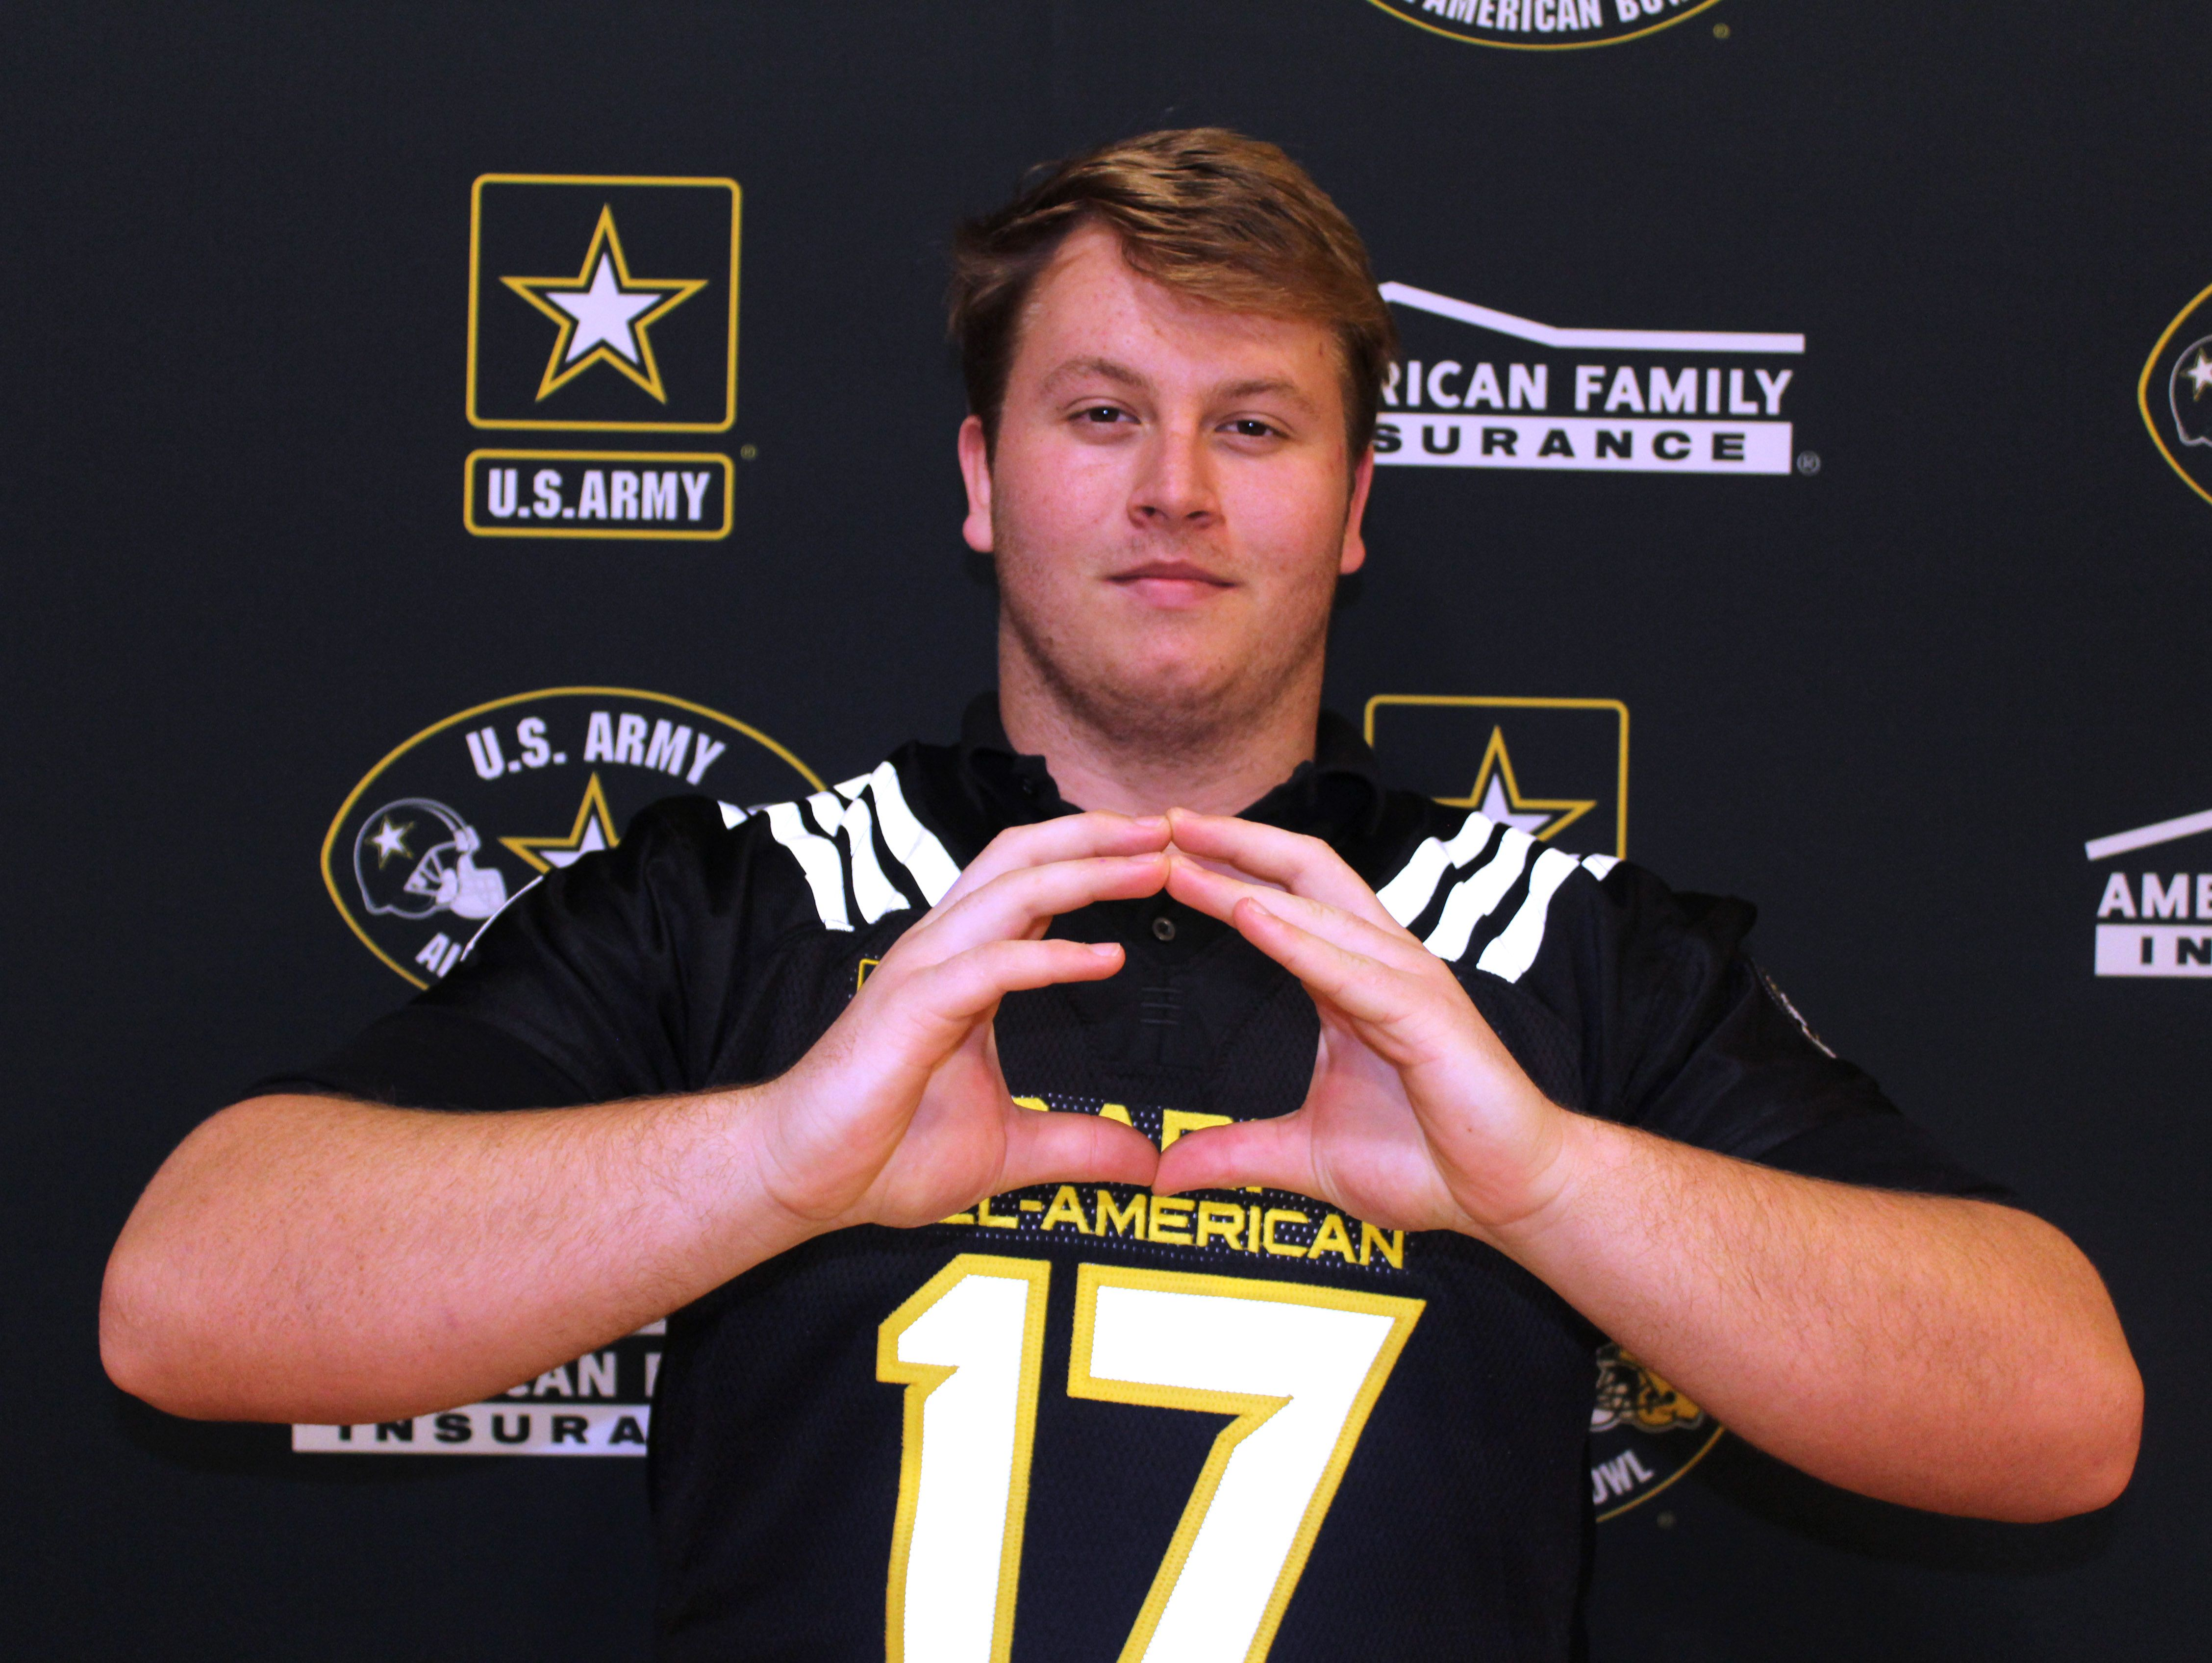 Rutger Reitmaier, a Lipscomb Academy senior, received an honorary U.S. Army All-American Bowl on Friday. He is an Oregon commitment.